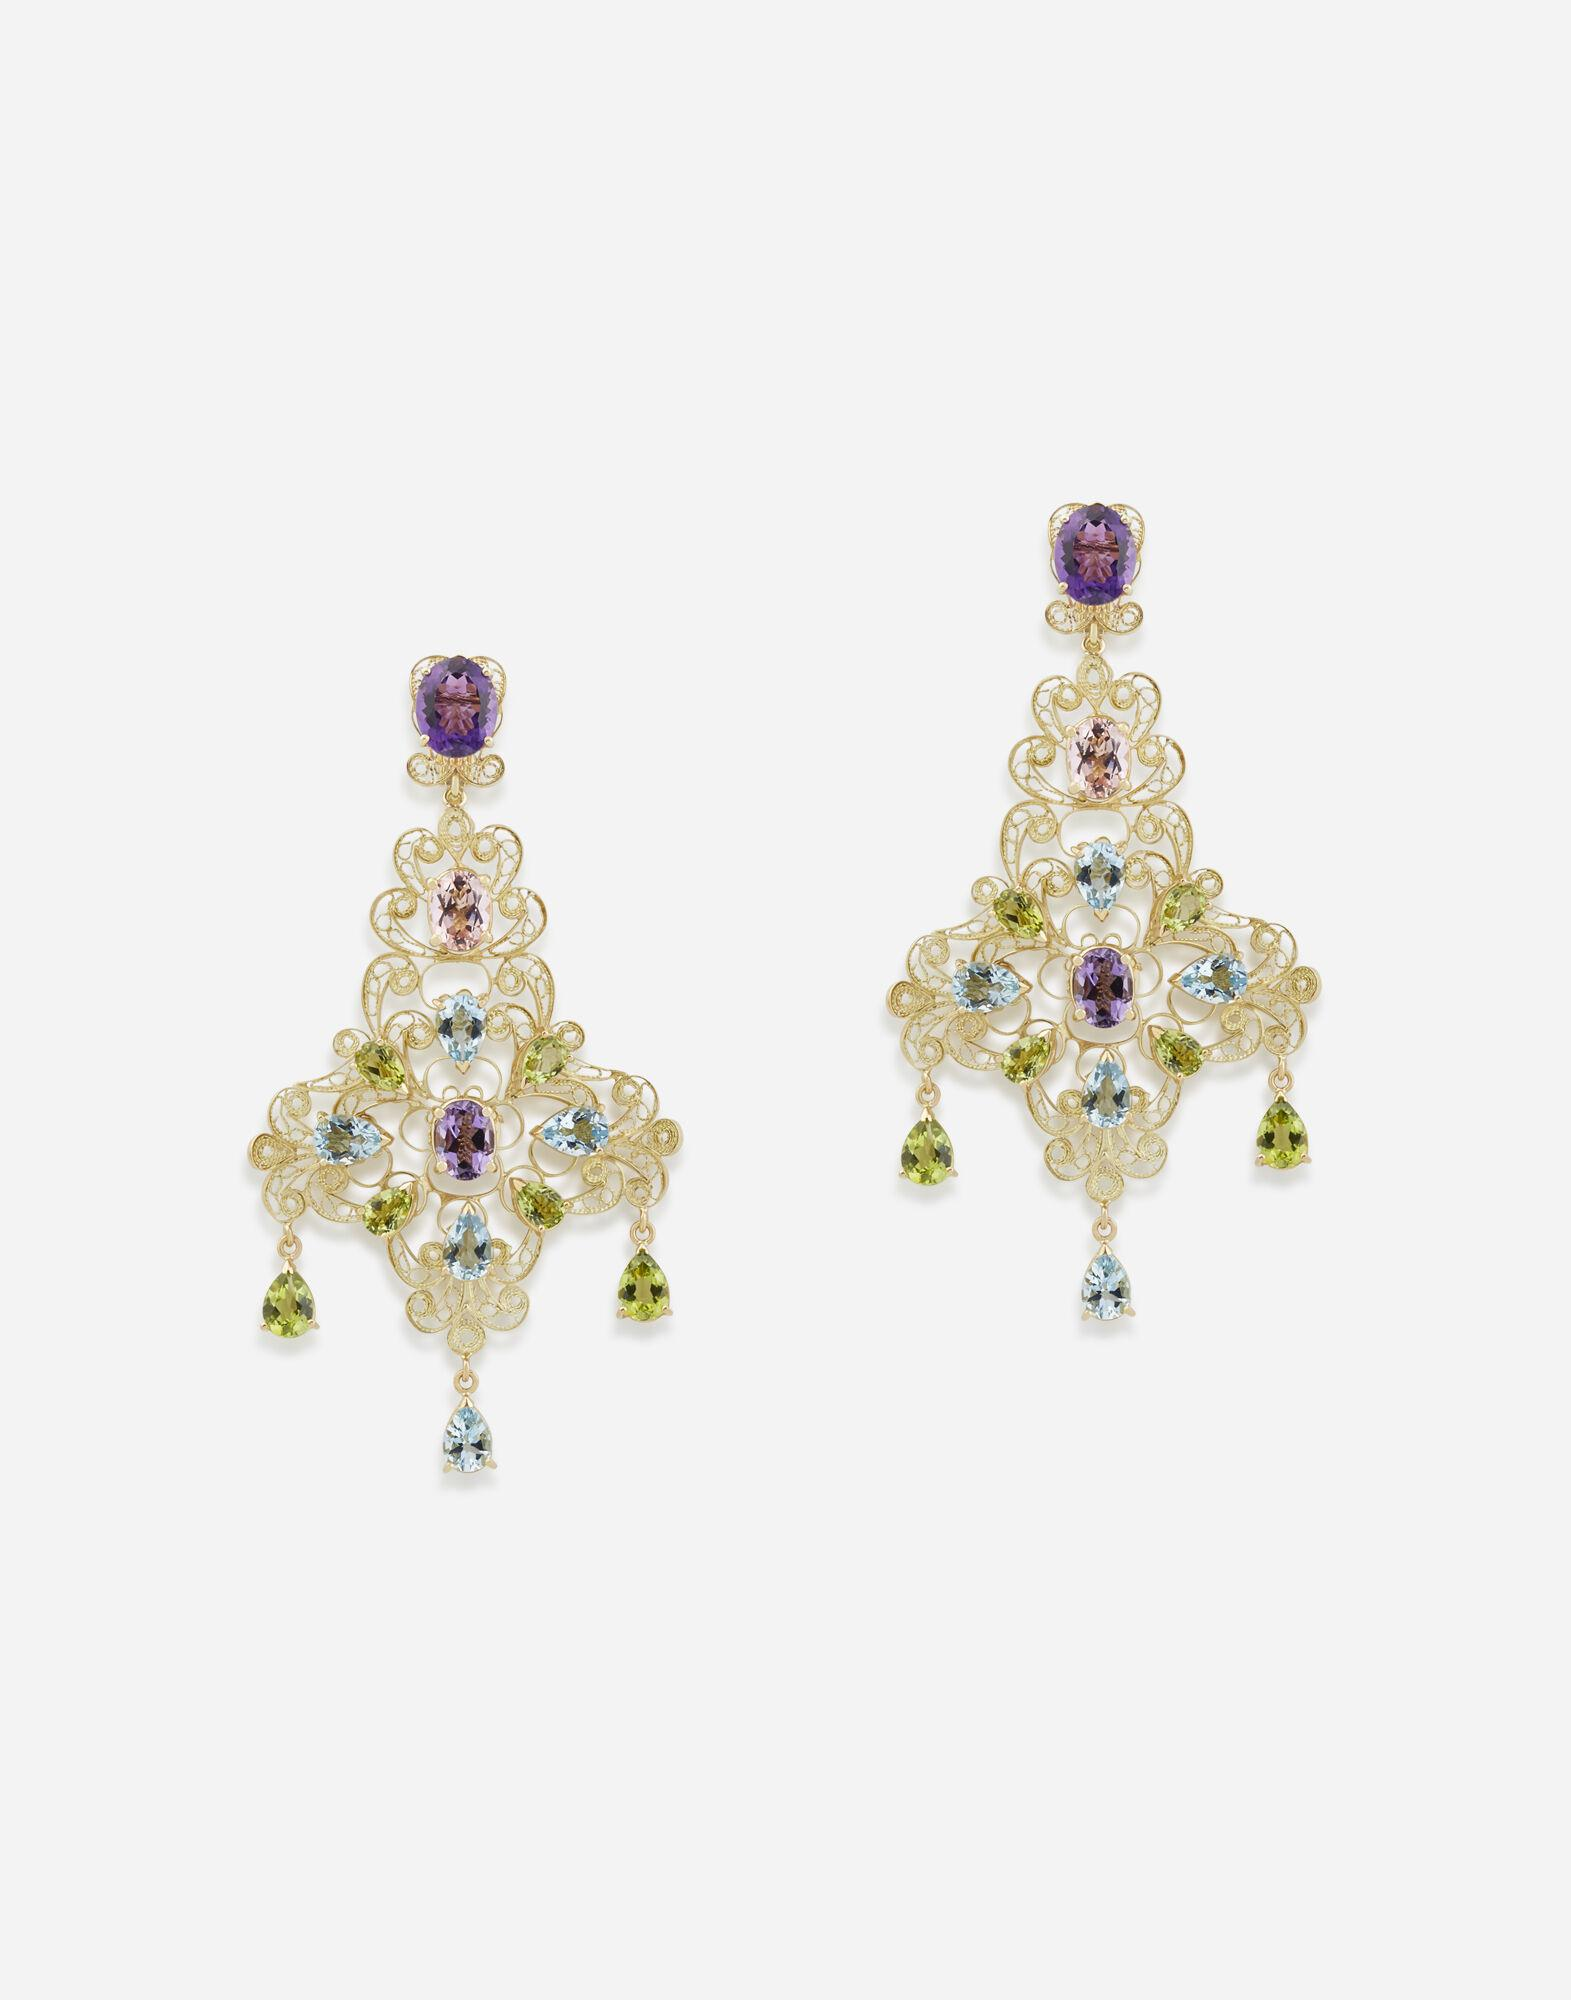 Pizzo earrings in yellow gold filigree with amethysts, aquamarines, peridots and morganites